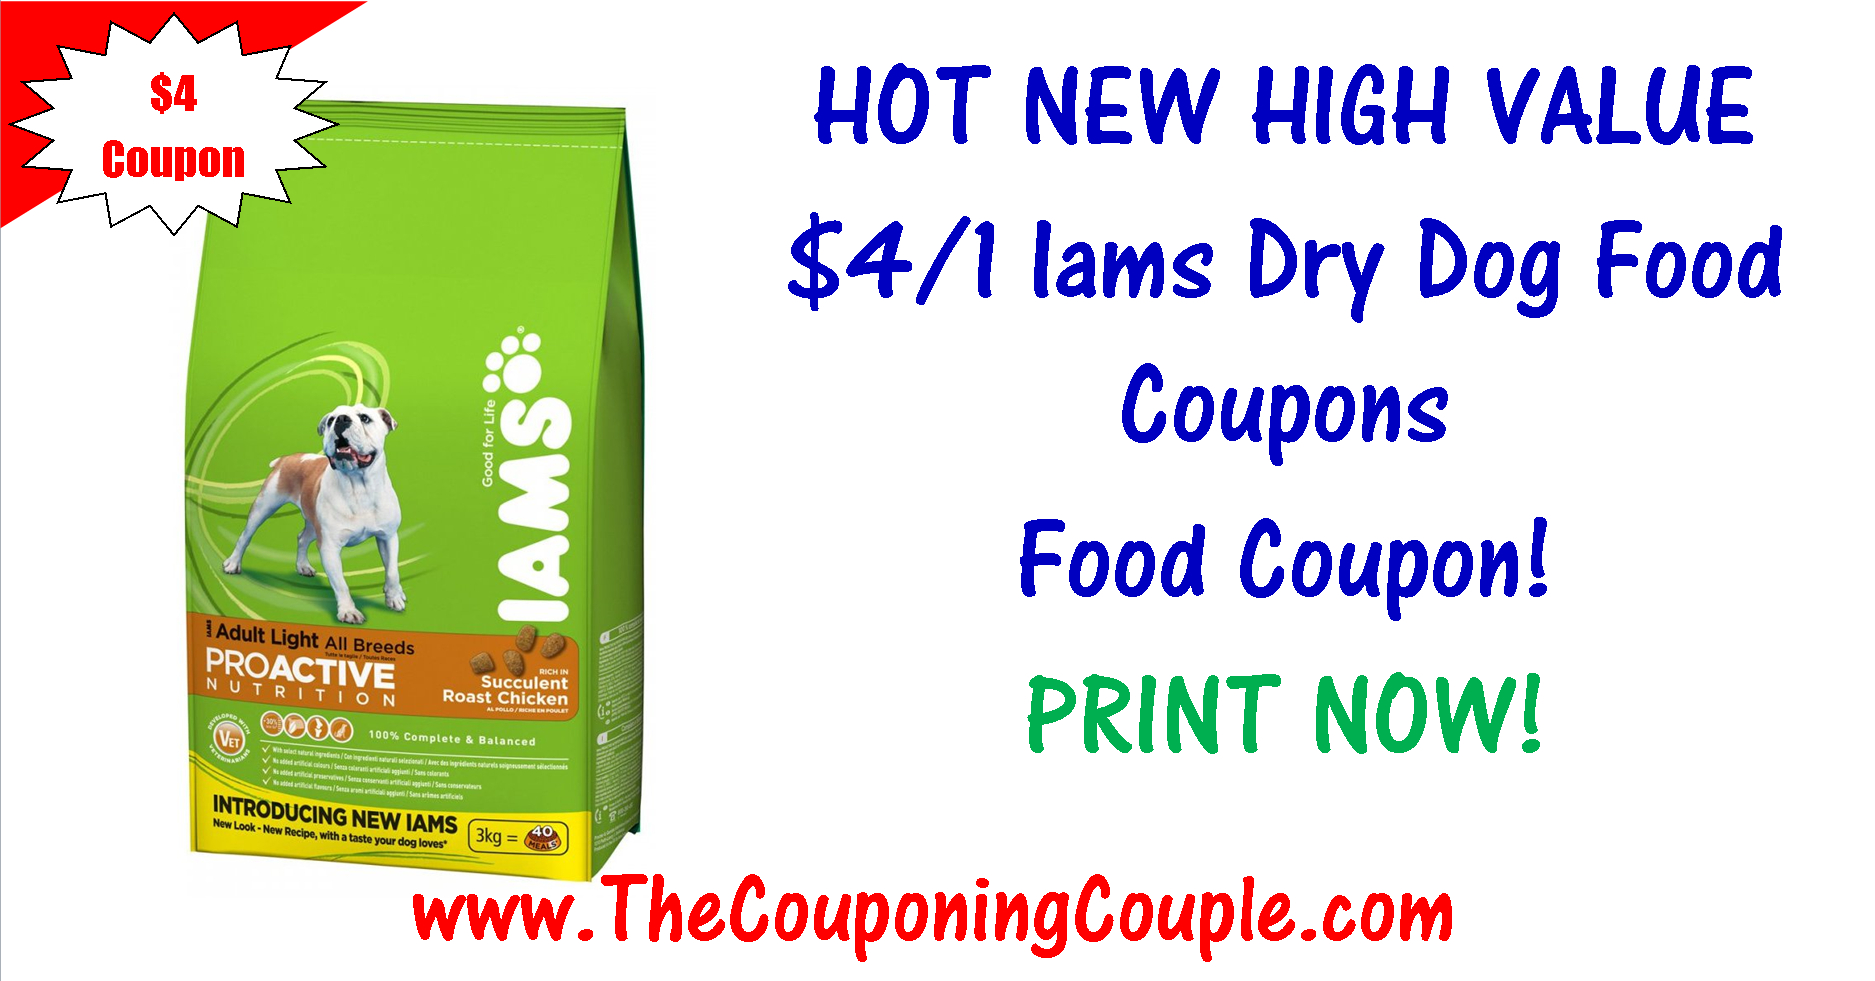 Huge Reset Iams Dry Dog Food Coupon ~ $4/1 Print Now! - Free Printable Scoop Away Coupons